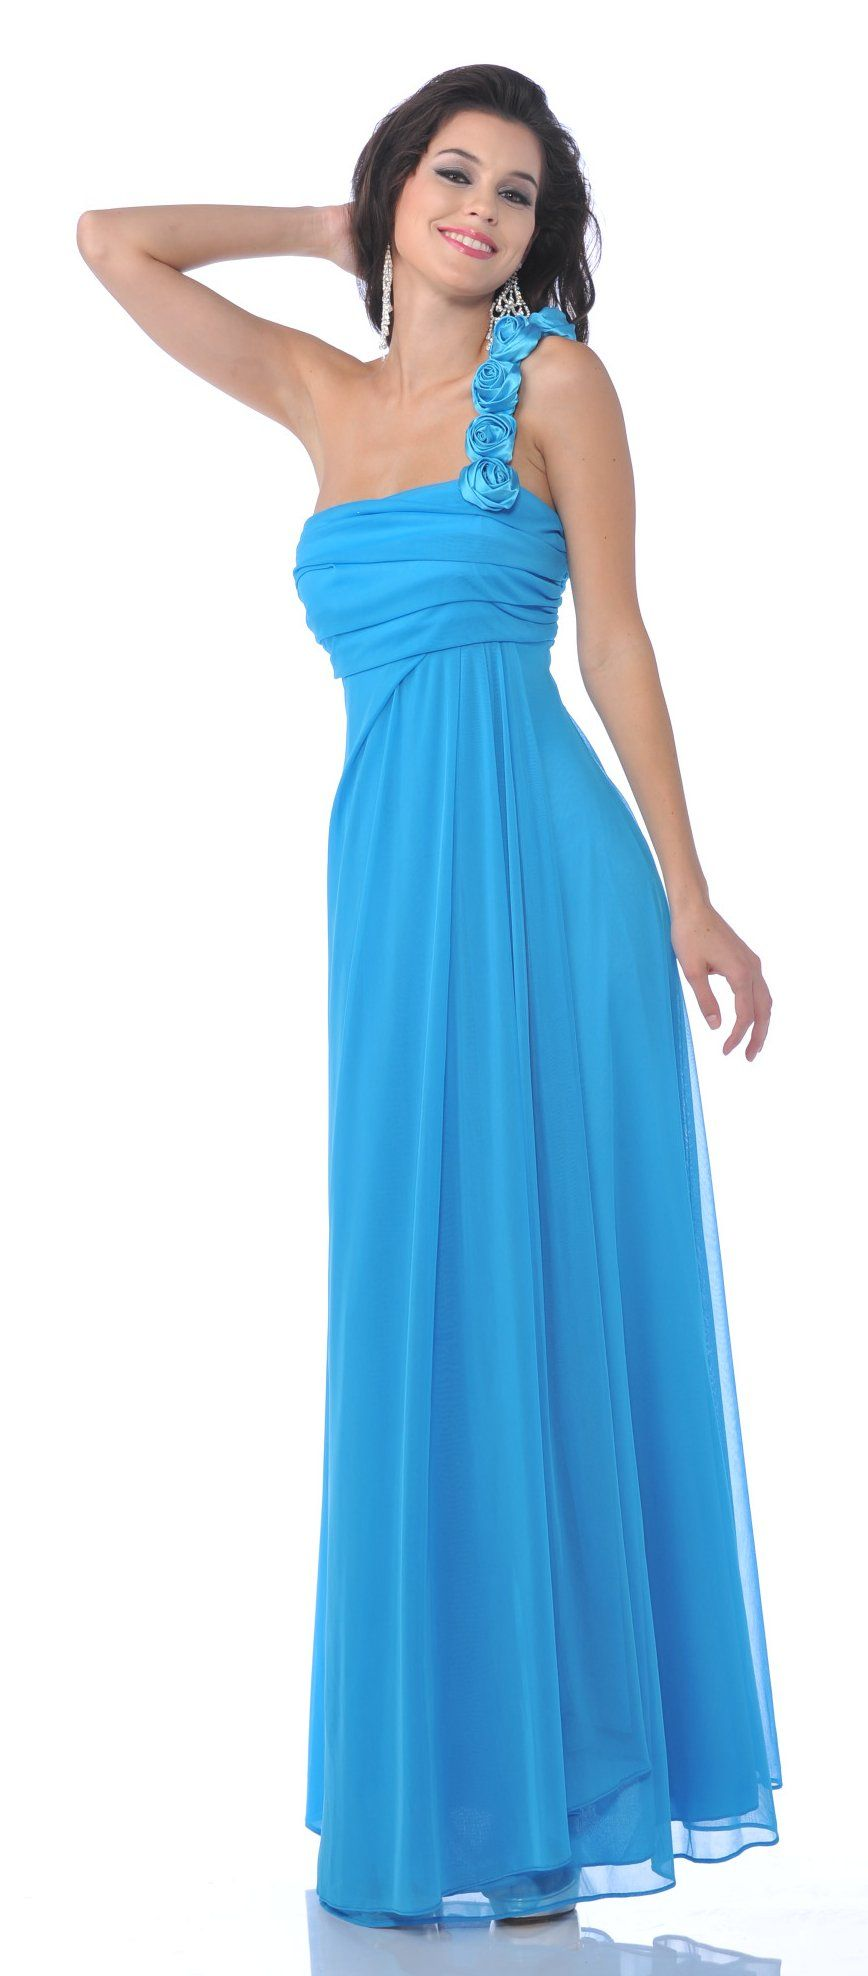 Clearance One Shoulder Flowy Chiffon Turquoise Dress